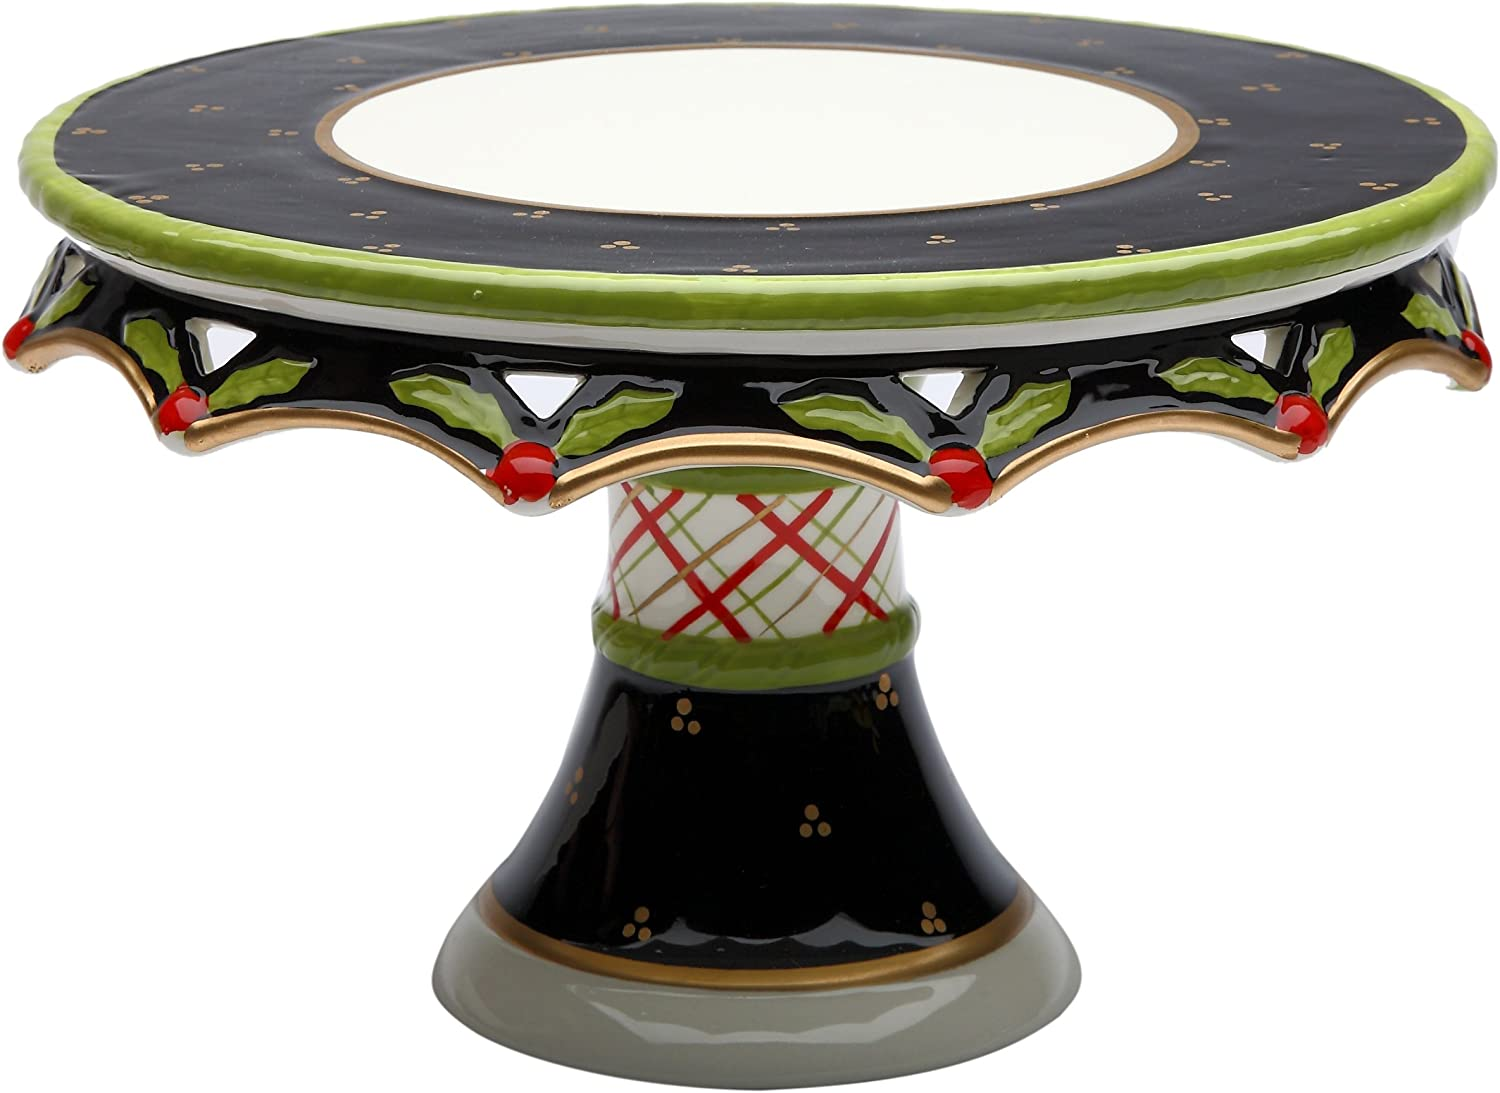 Appletree Design 40209 Holly Cake Stand, 10-1 4 by 6-1 4 by 10-1 4-Inch